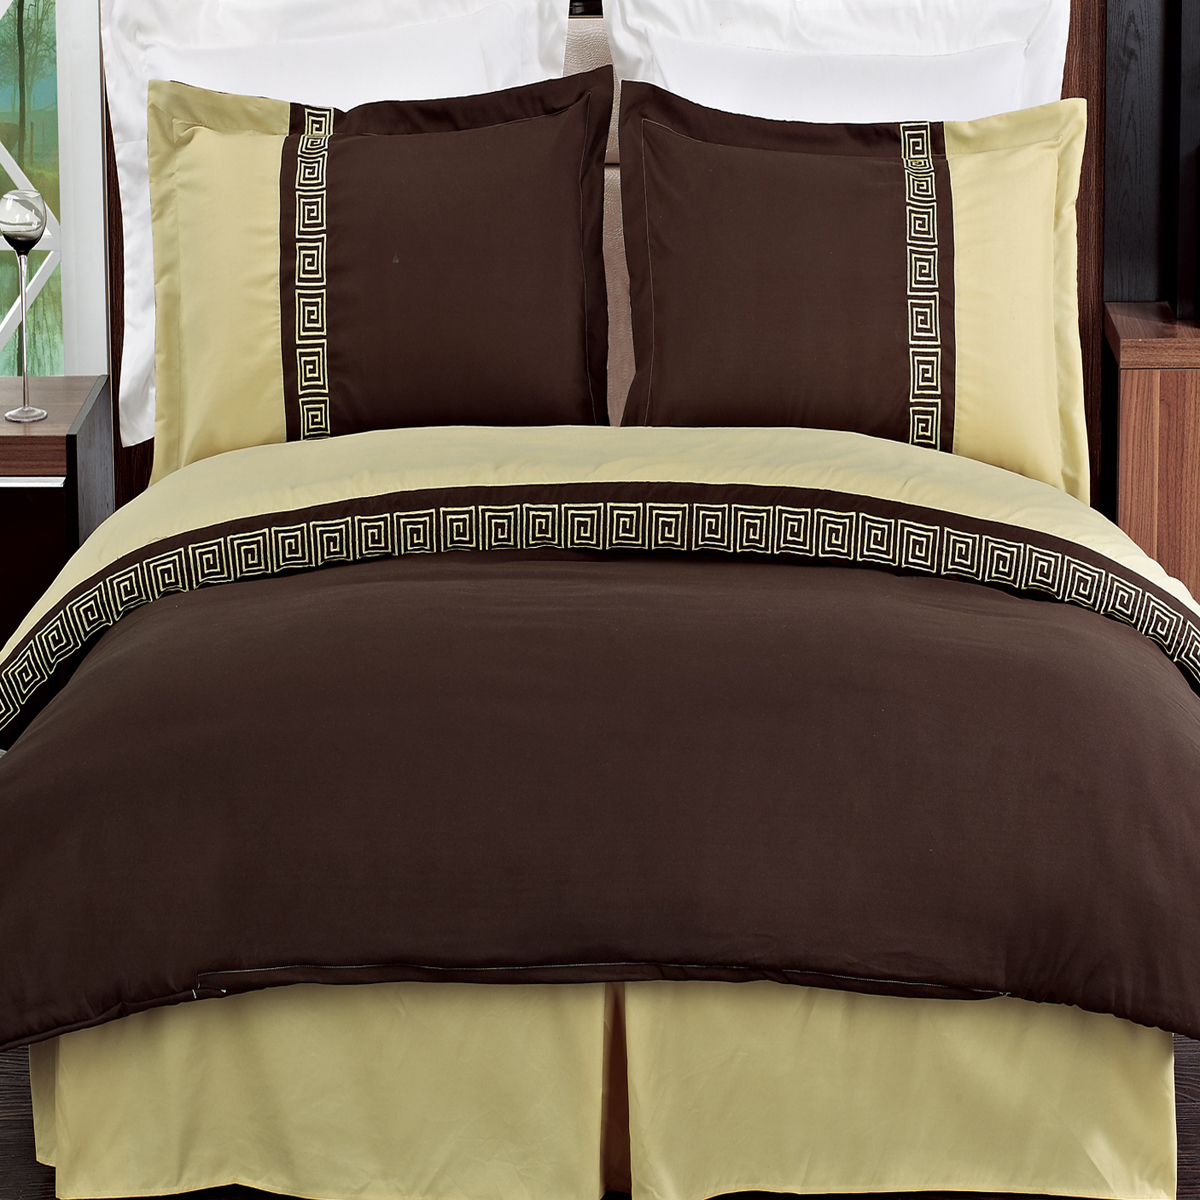 Luxury Astrid Embroidered 3-Piece 100% Microfiber Duvet Cover & 2 Shams Set- 2 Sizes